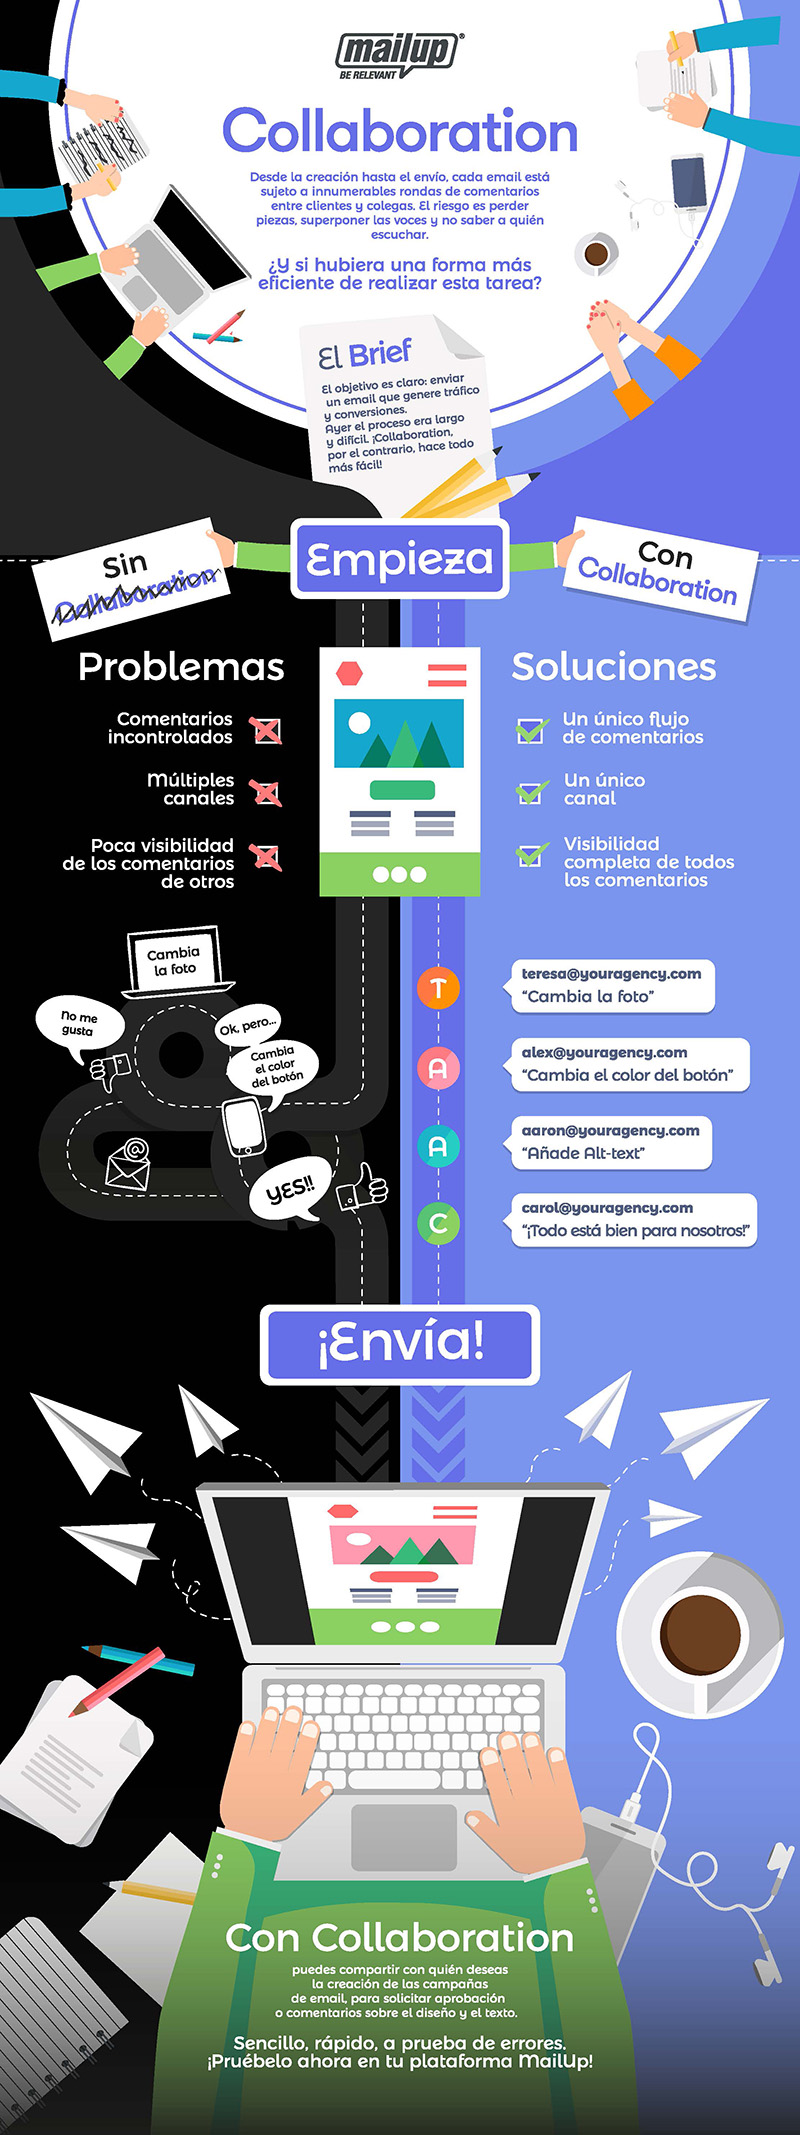 La infografía sobre Collaboration